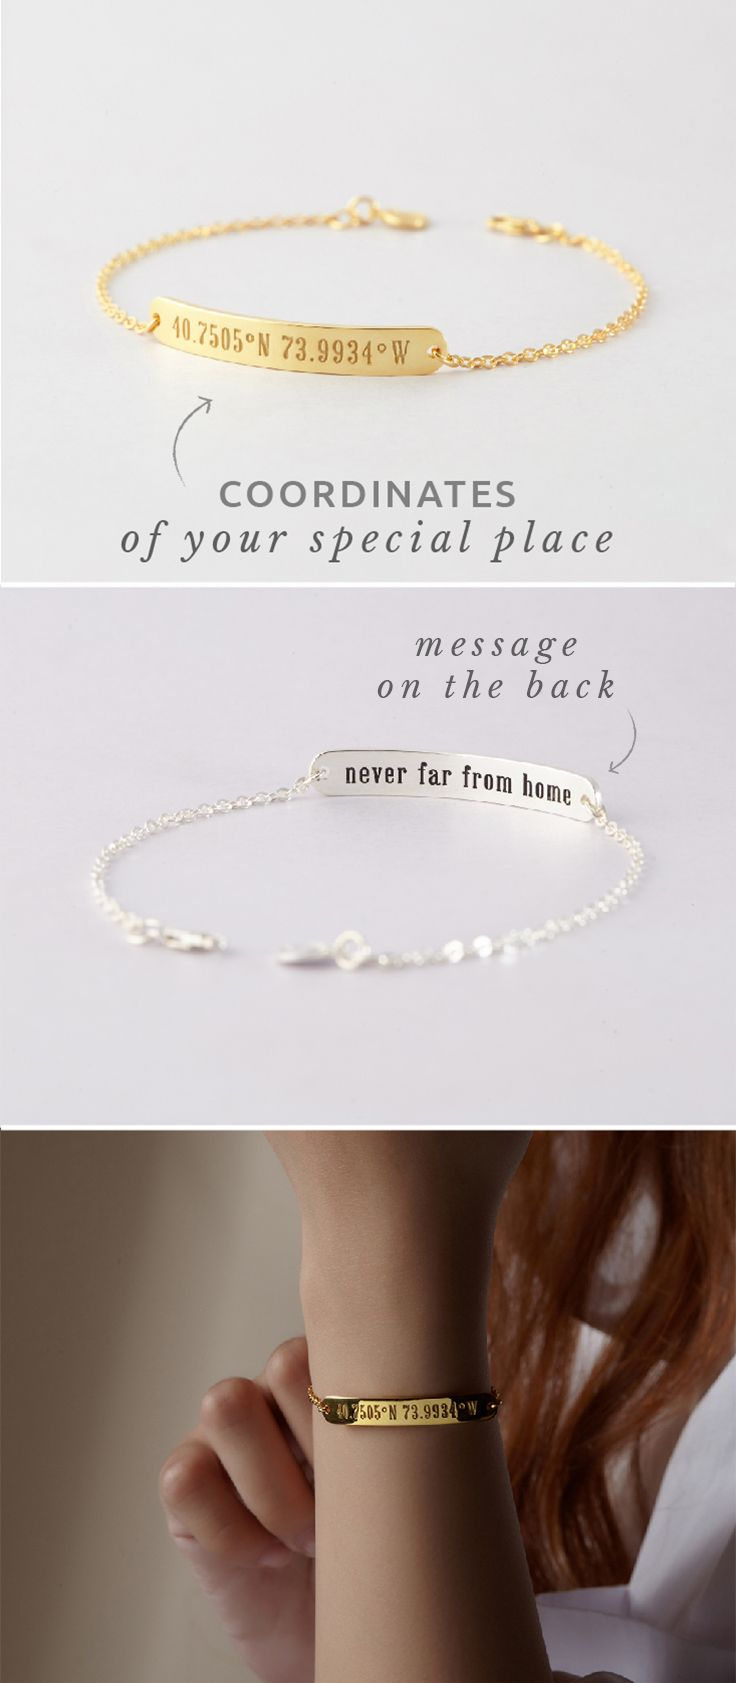 Bar Bracelet with Coordinates • Longitude and Latitude Bracelet • Bar Coordinates Bracelet • Bracelets with GPS coordinates • Silver coordinates bracelet • Engraved coordinates bracelet • Custom bracelet with coordinates • personalized coordinates bracelet • Minimalist bracelet • Best friend bracelet • Best Graduation Gifts • best engagement gifts for couples • happy graduation • farewell gifts • traditional engagement gifts for him • Valentine's Day Gifts